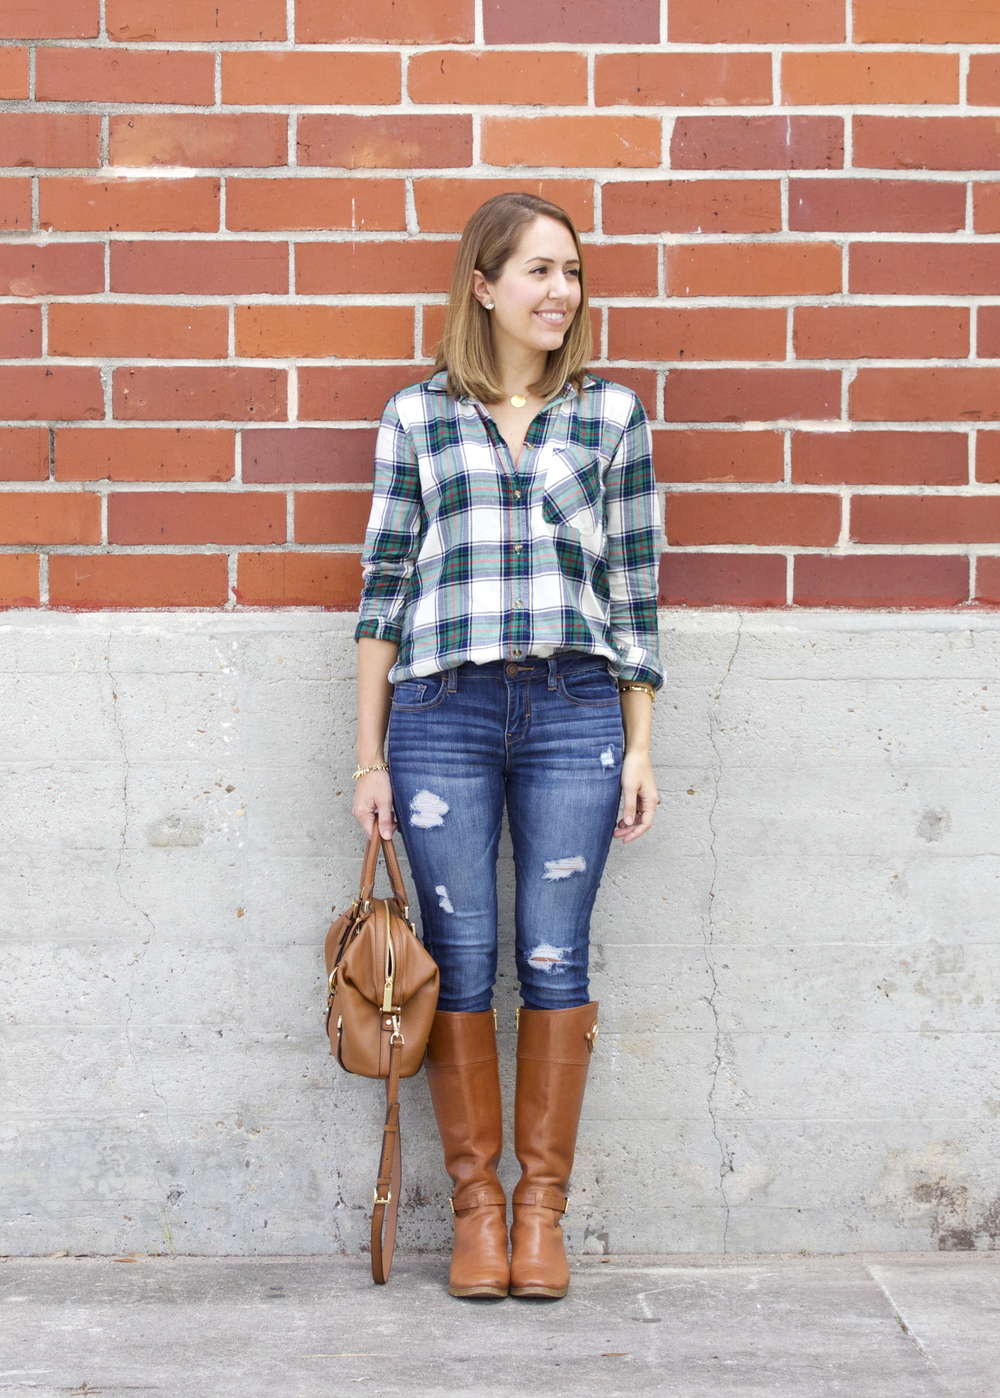 Boyfriend plaid, distressed jeans, riding boots